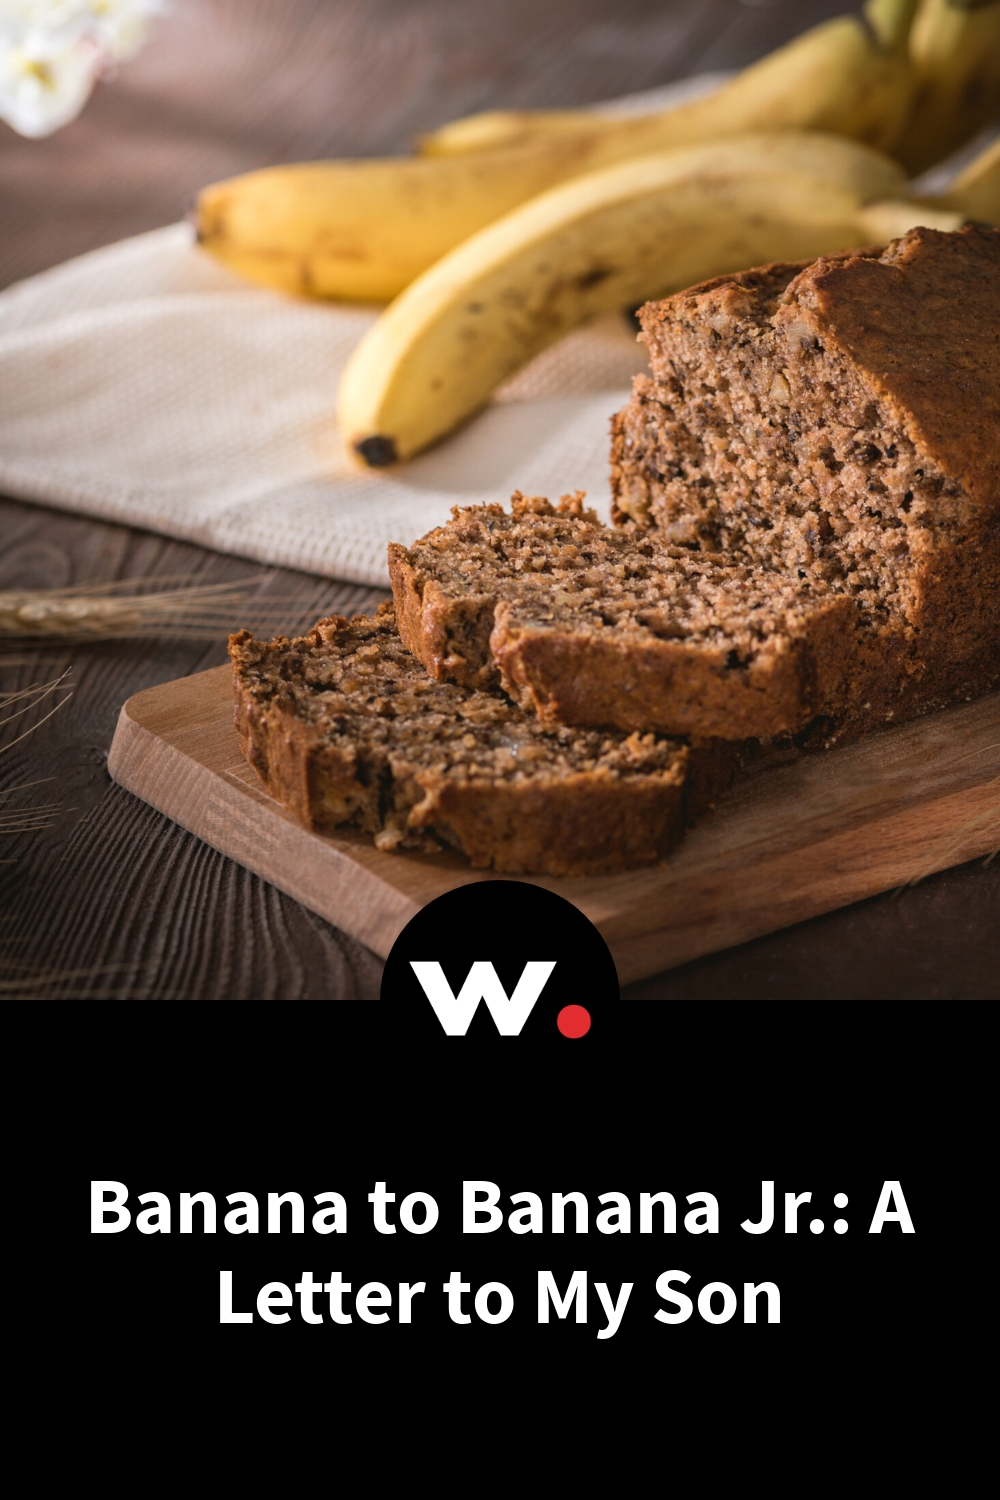 Banana to Banana Jr.: A Letter to My Son